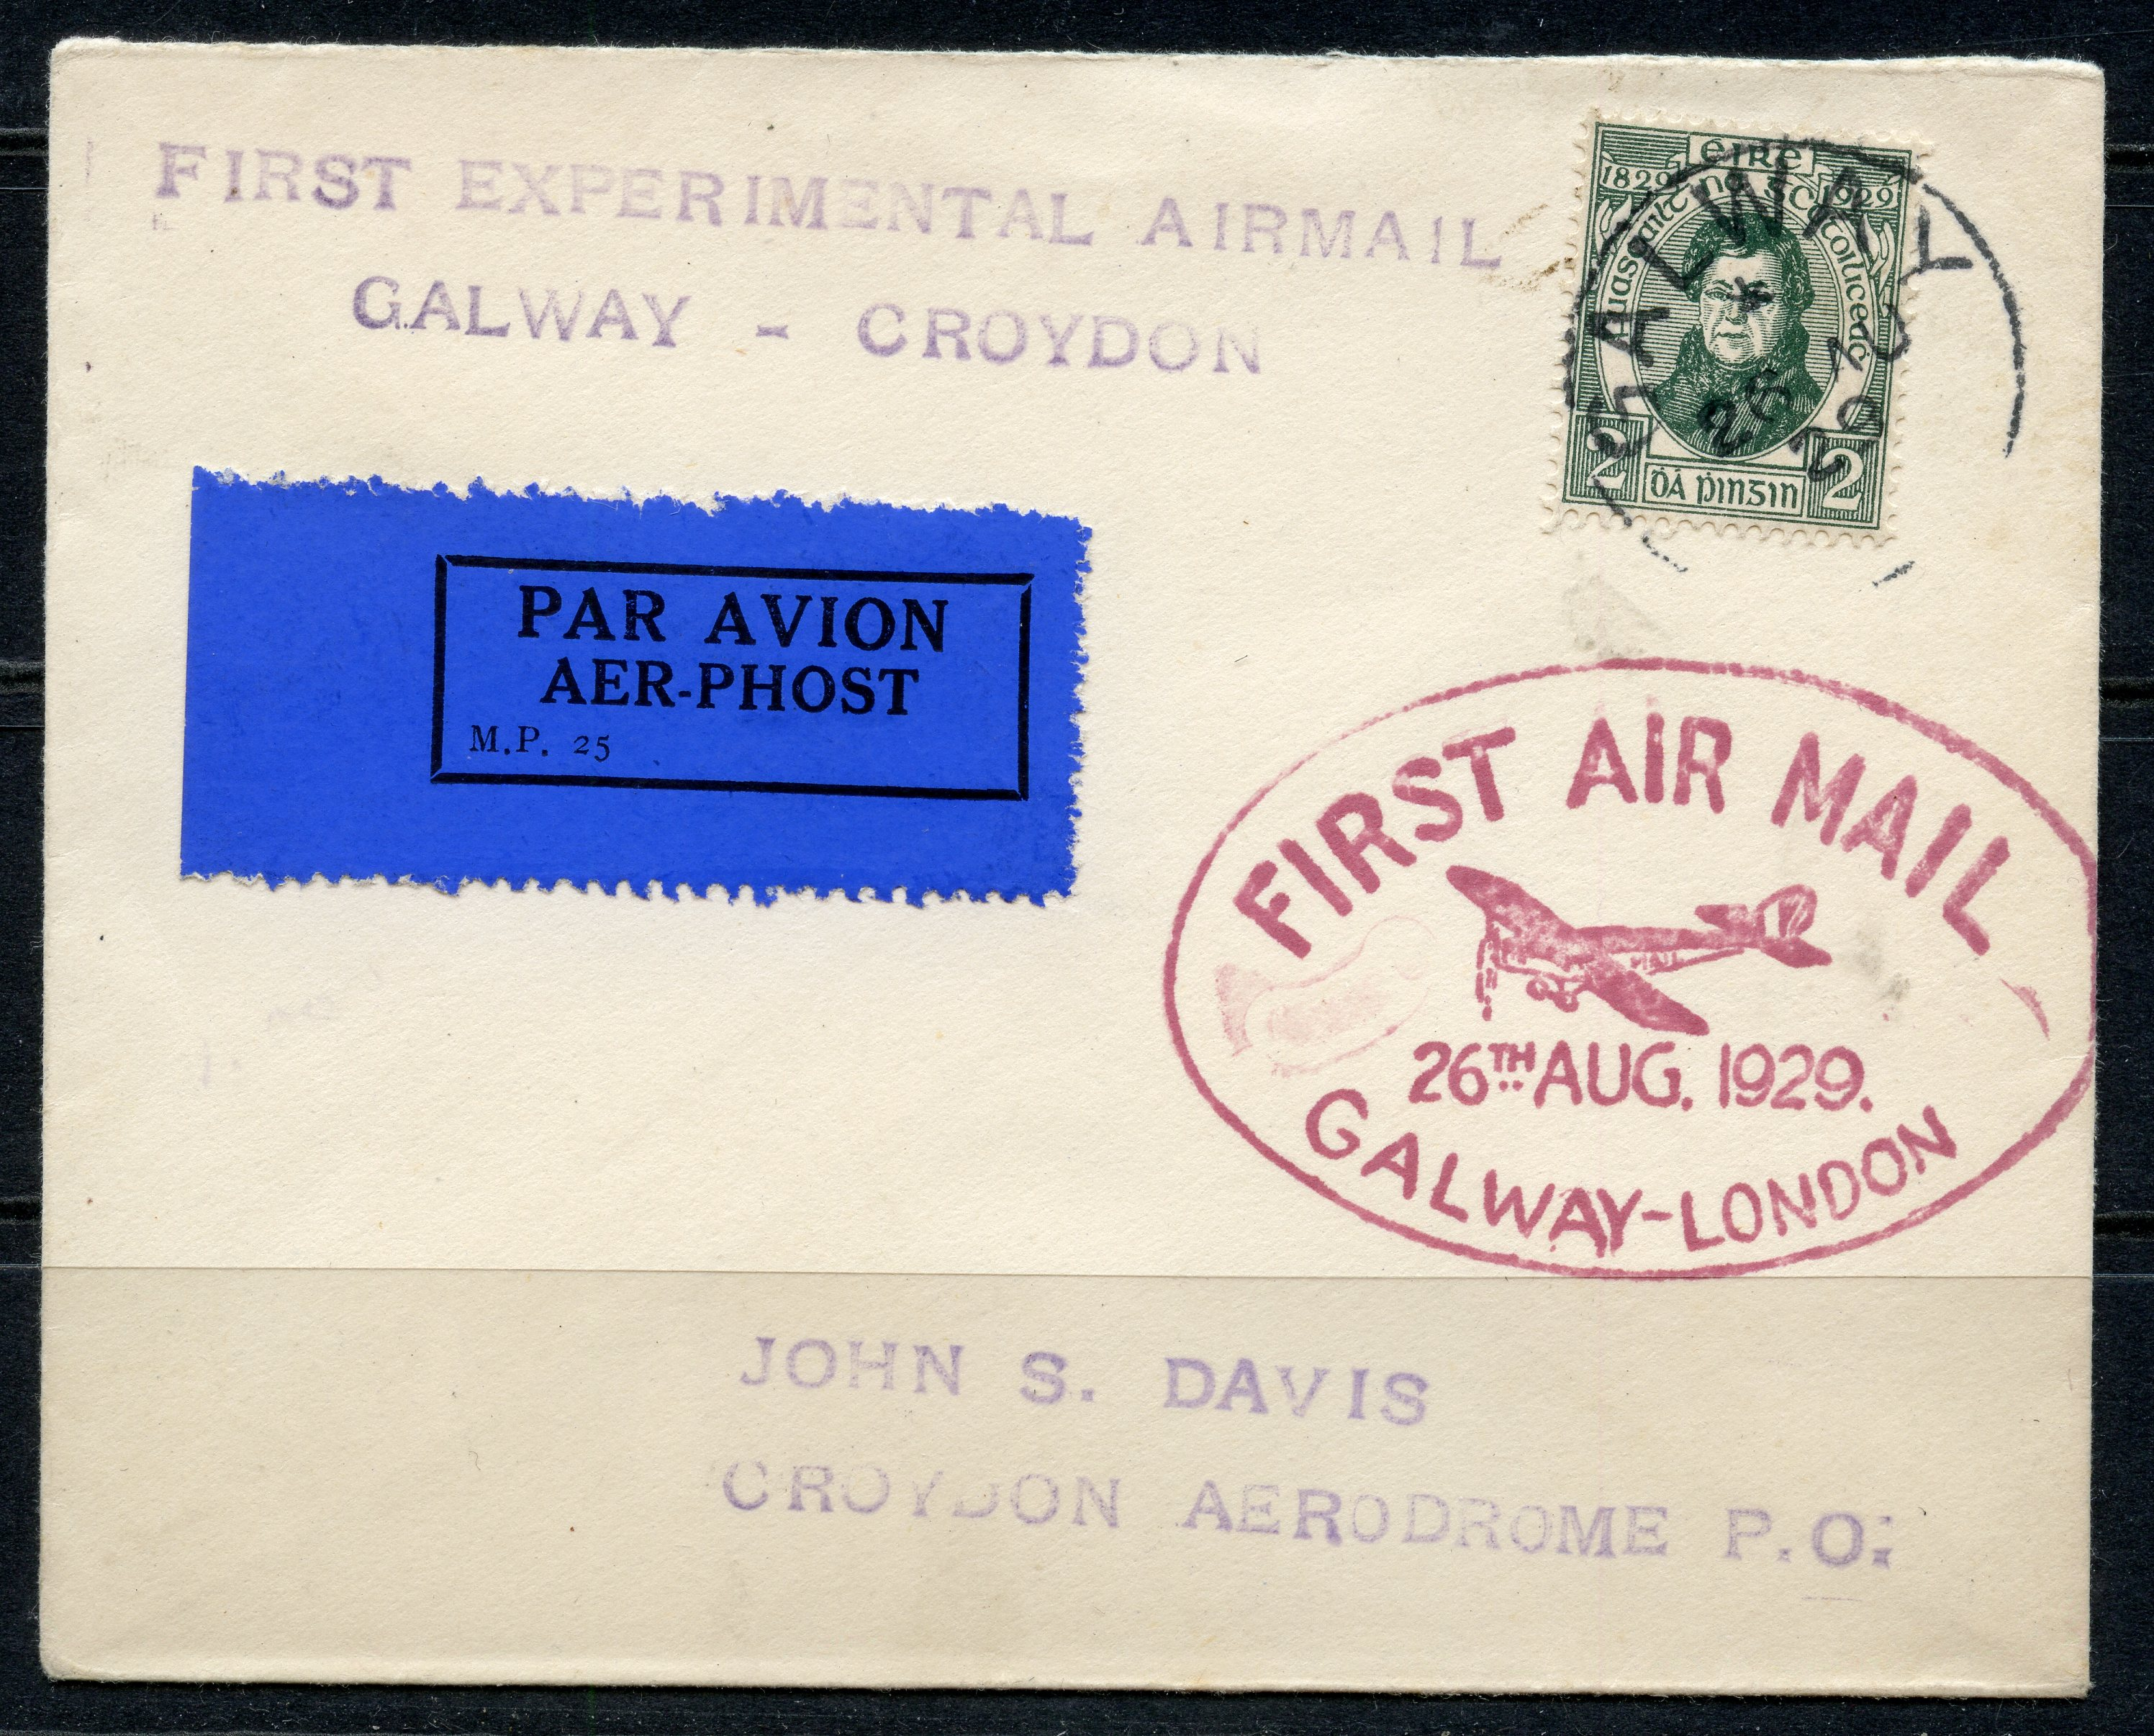 IRELAND 1929 First Flight Cover from Galway to London with Galway single circle cancel.